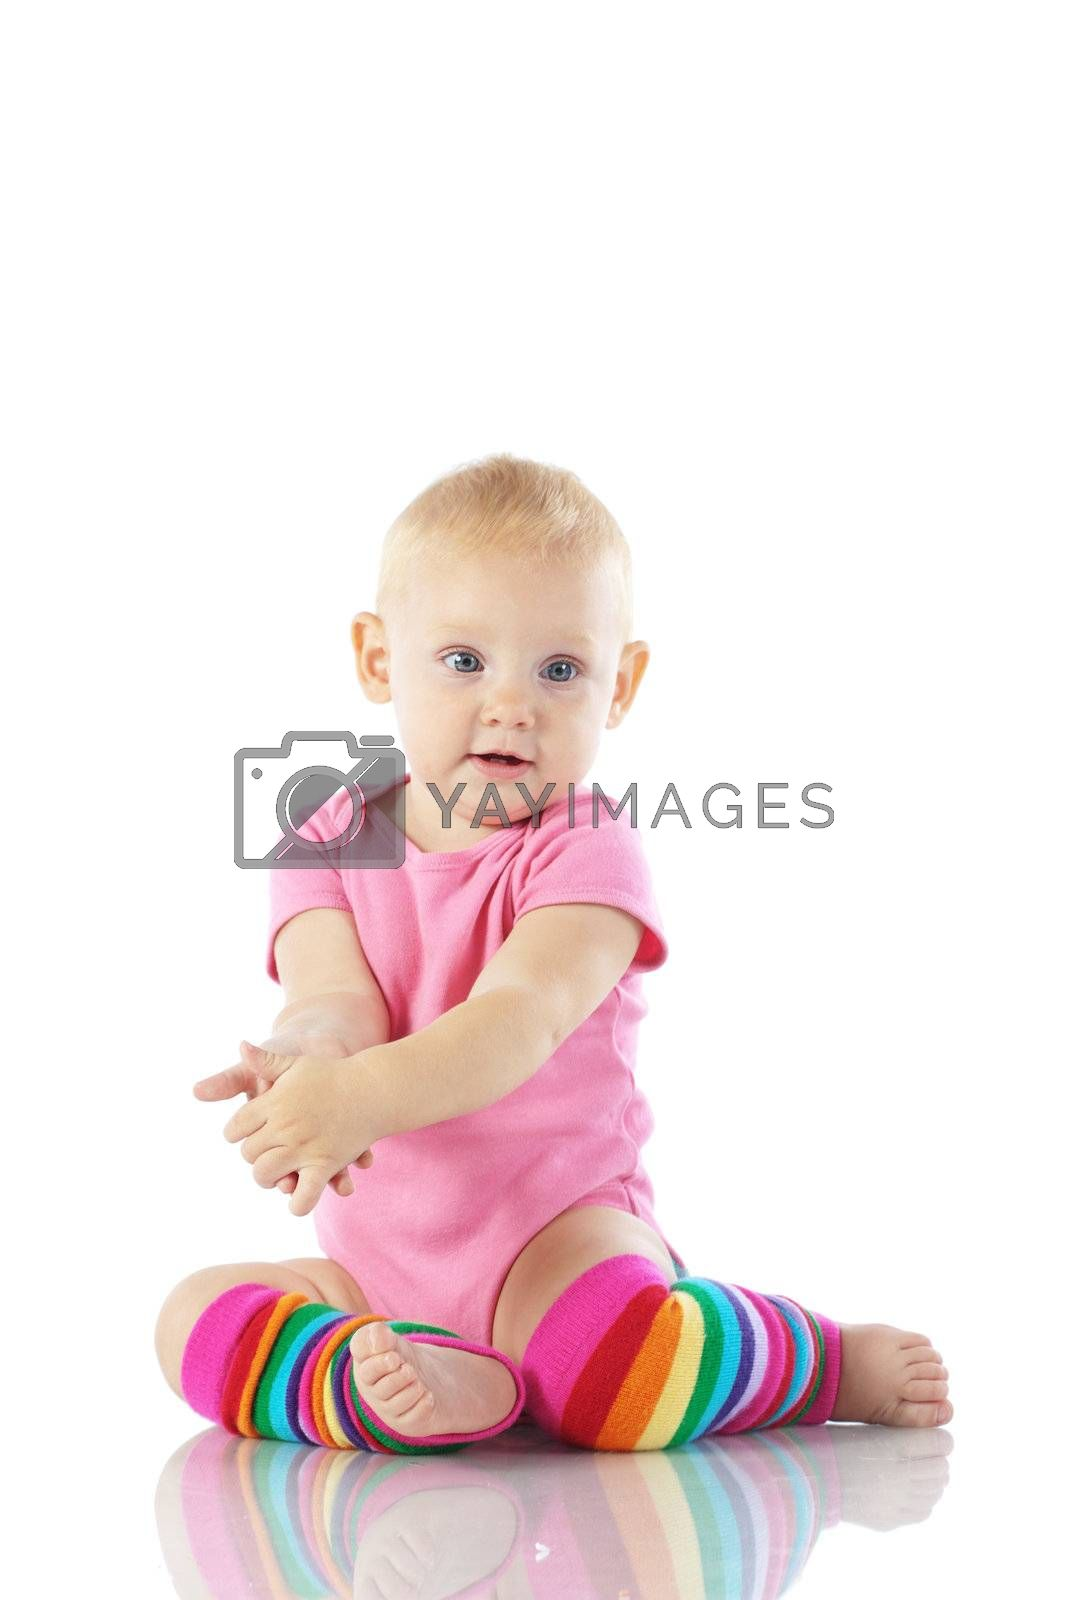 Cute toddler isolated on white background